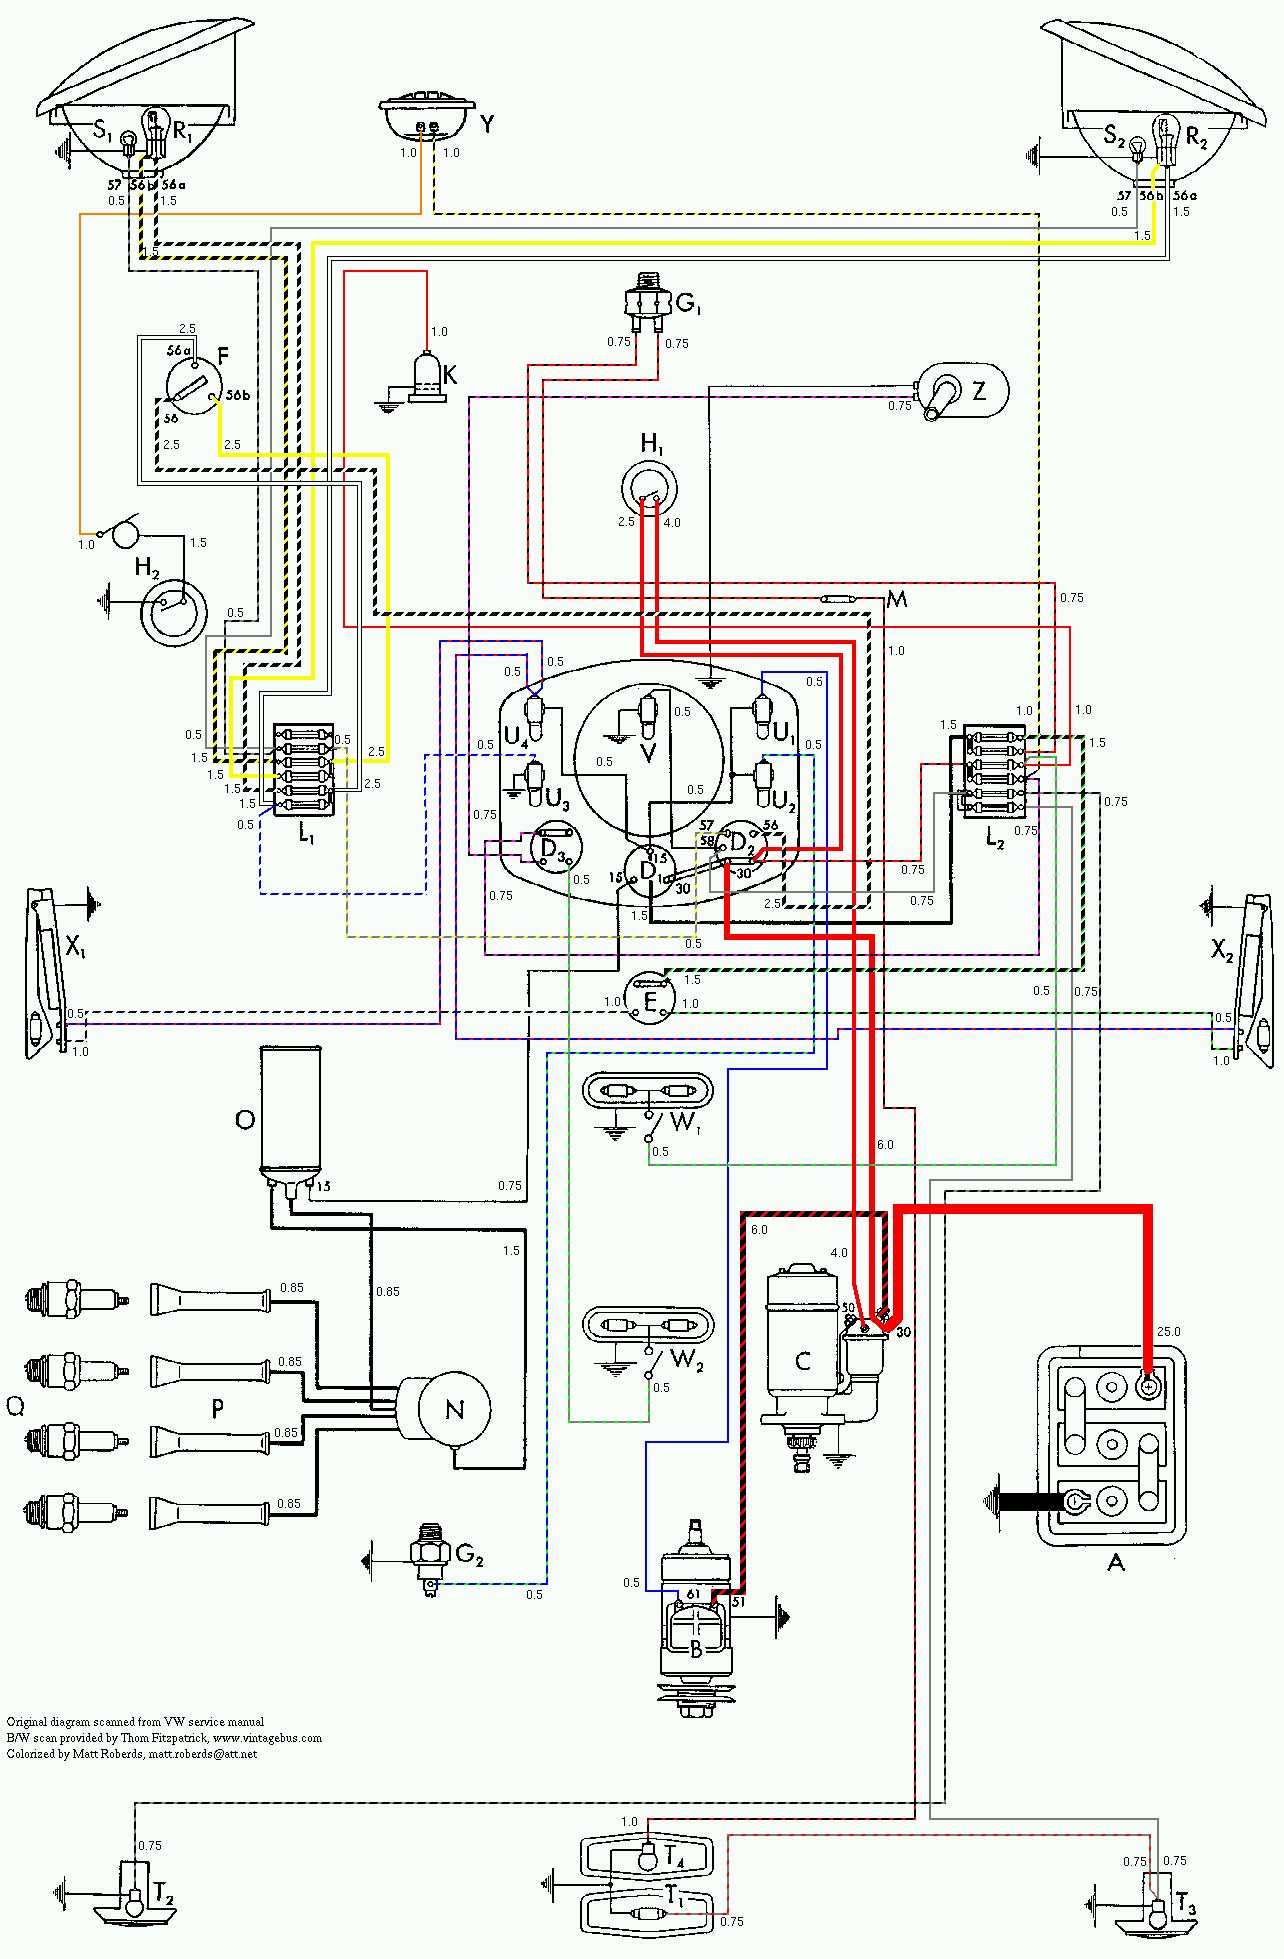 hight resolution of vintagebus com vw bus and other wiring diagrams 1960 vw bus fuse box